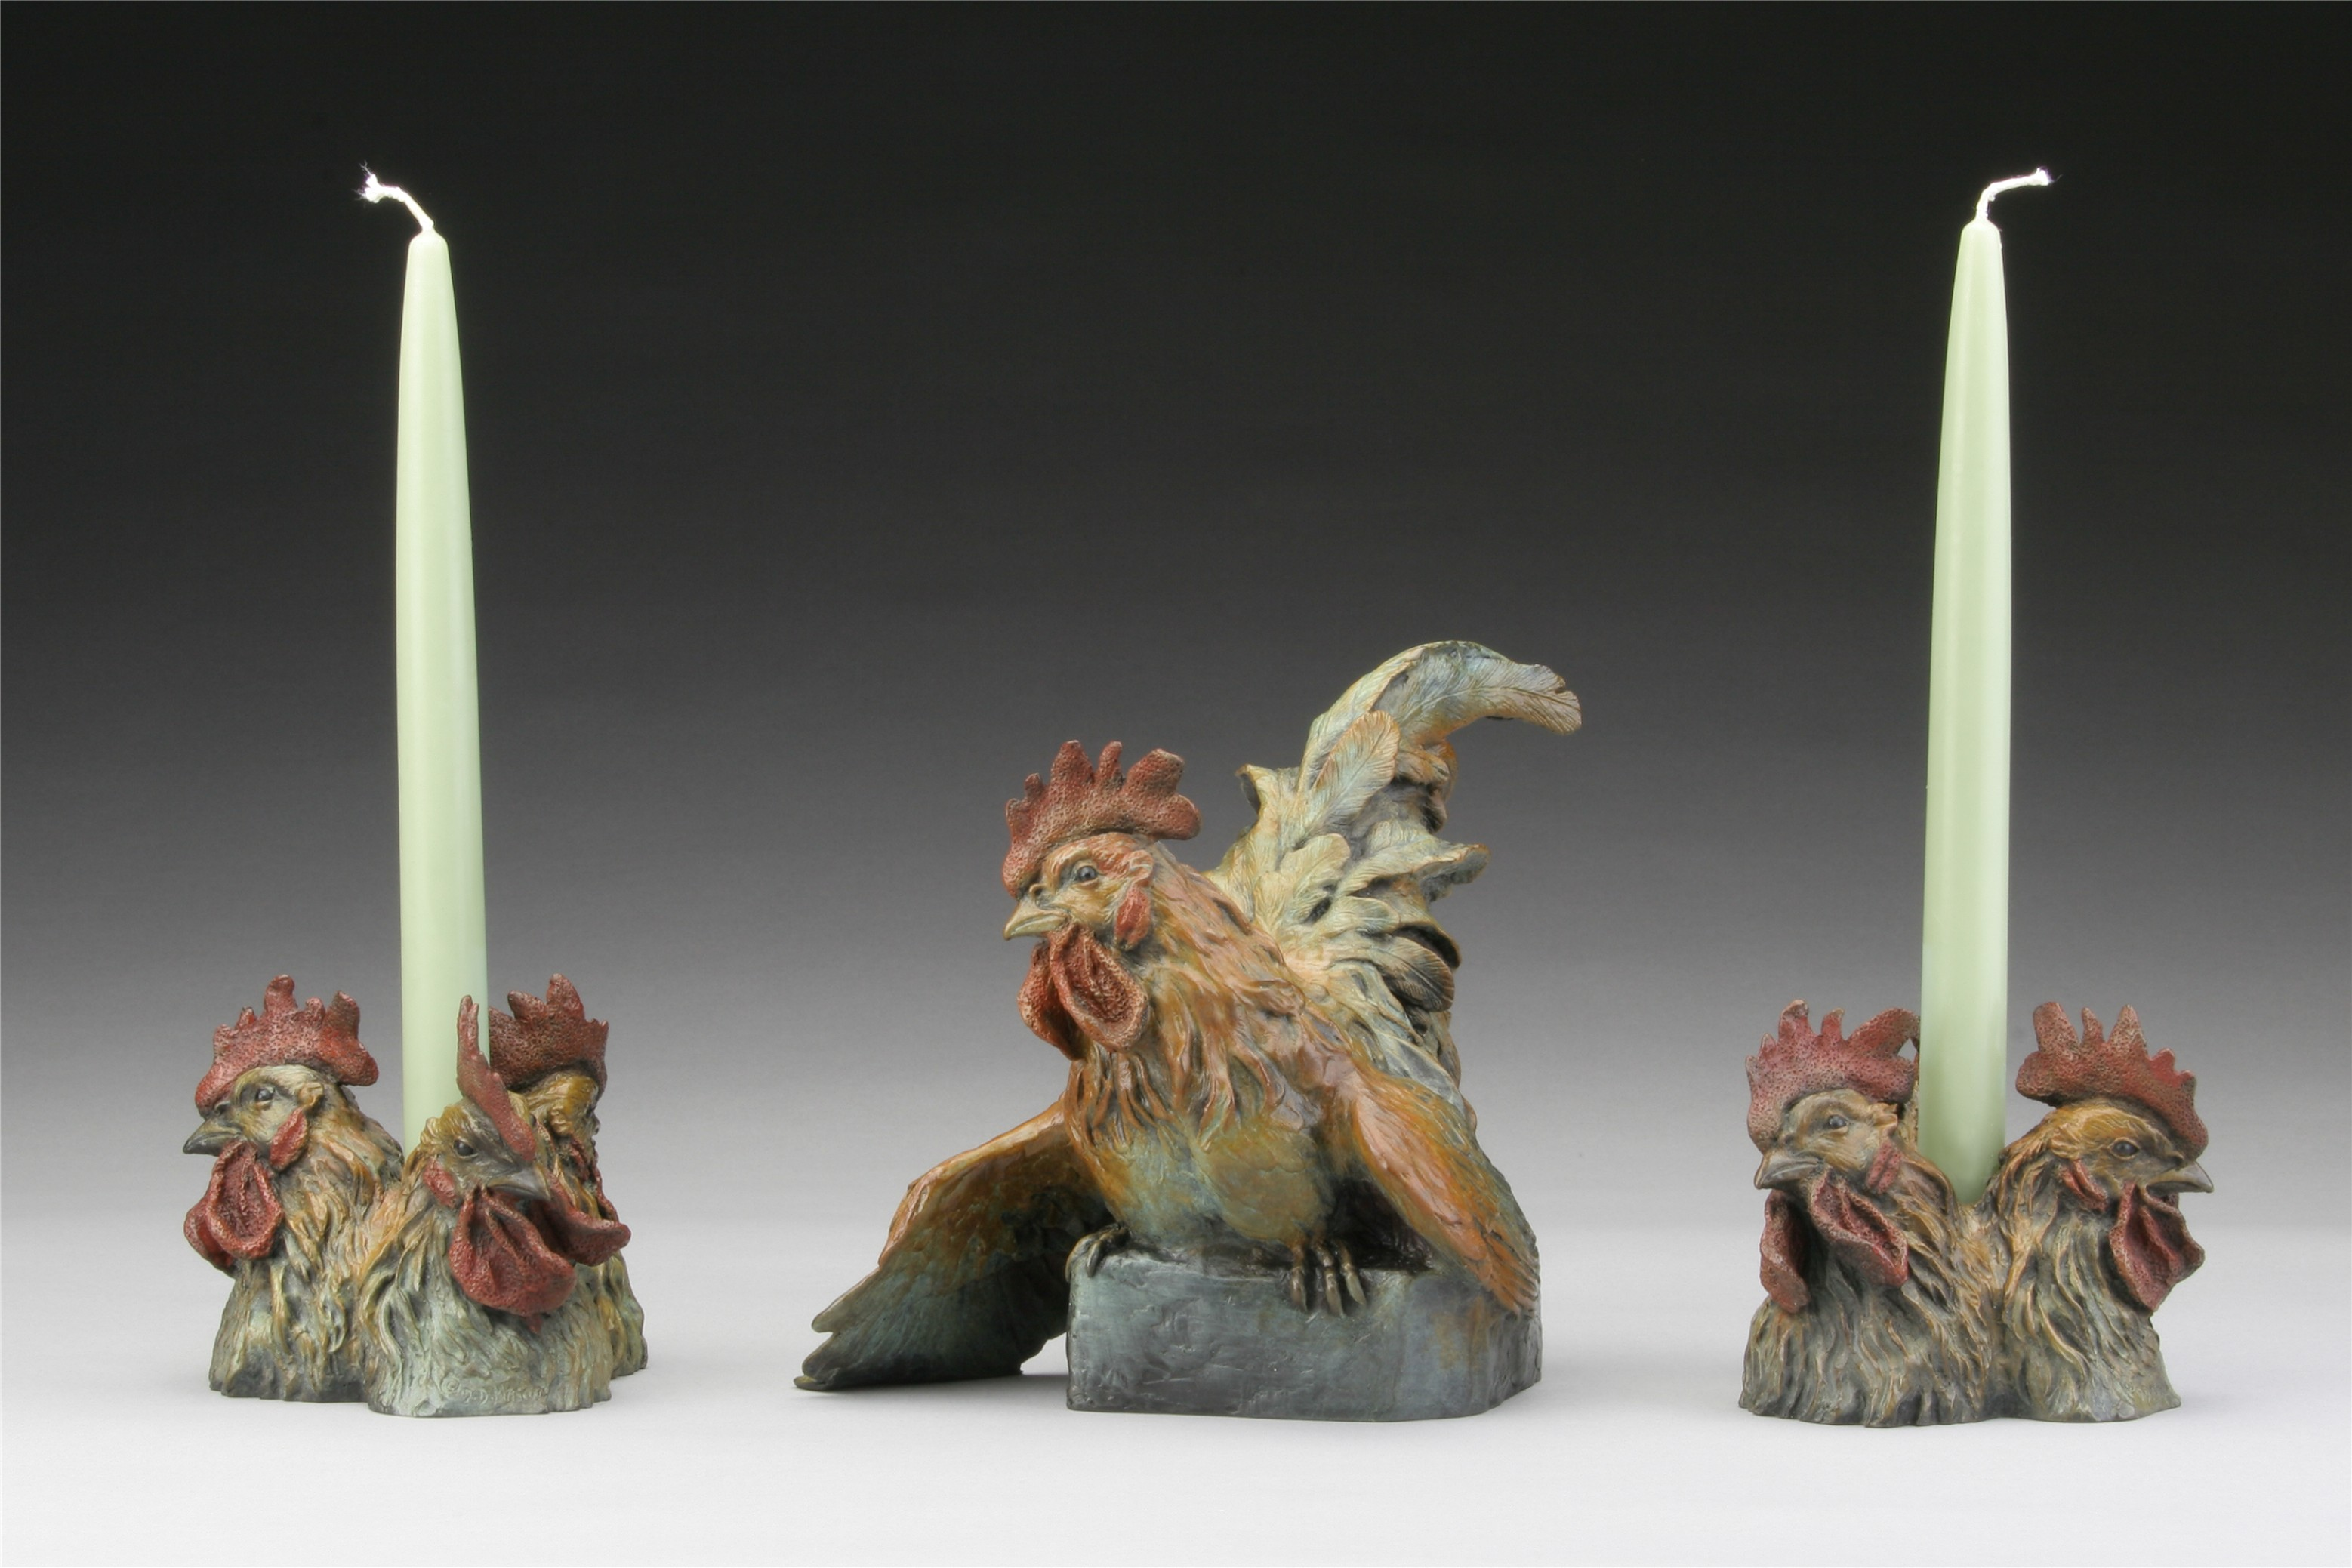 Bantam Rooster and Candles - Diane Mason - Bantam Rooster and Candles